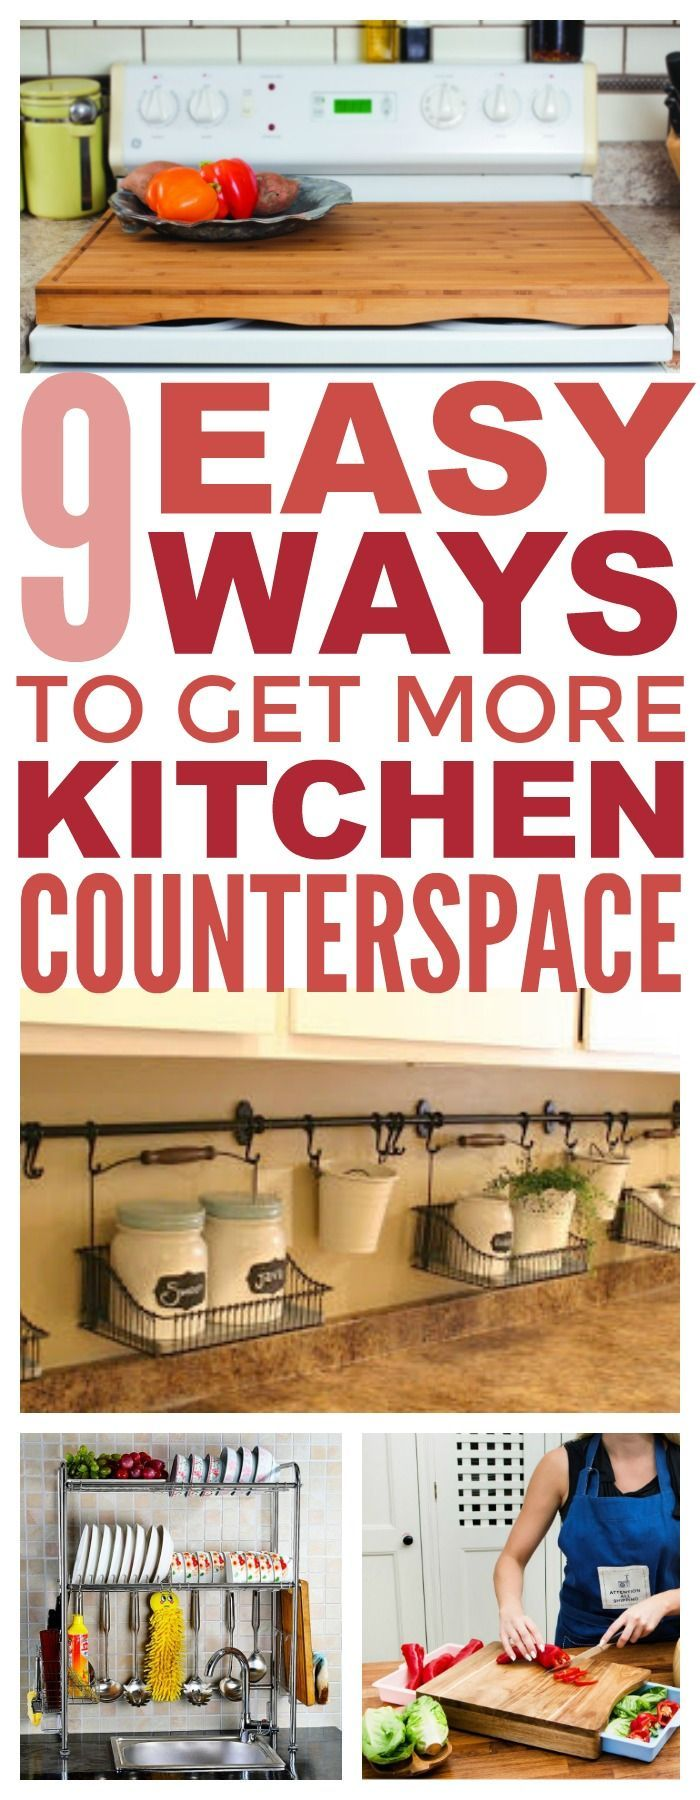 9 Simple Ways To Create More Counter Space In Your Tiny ...